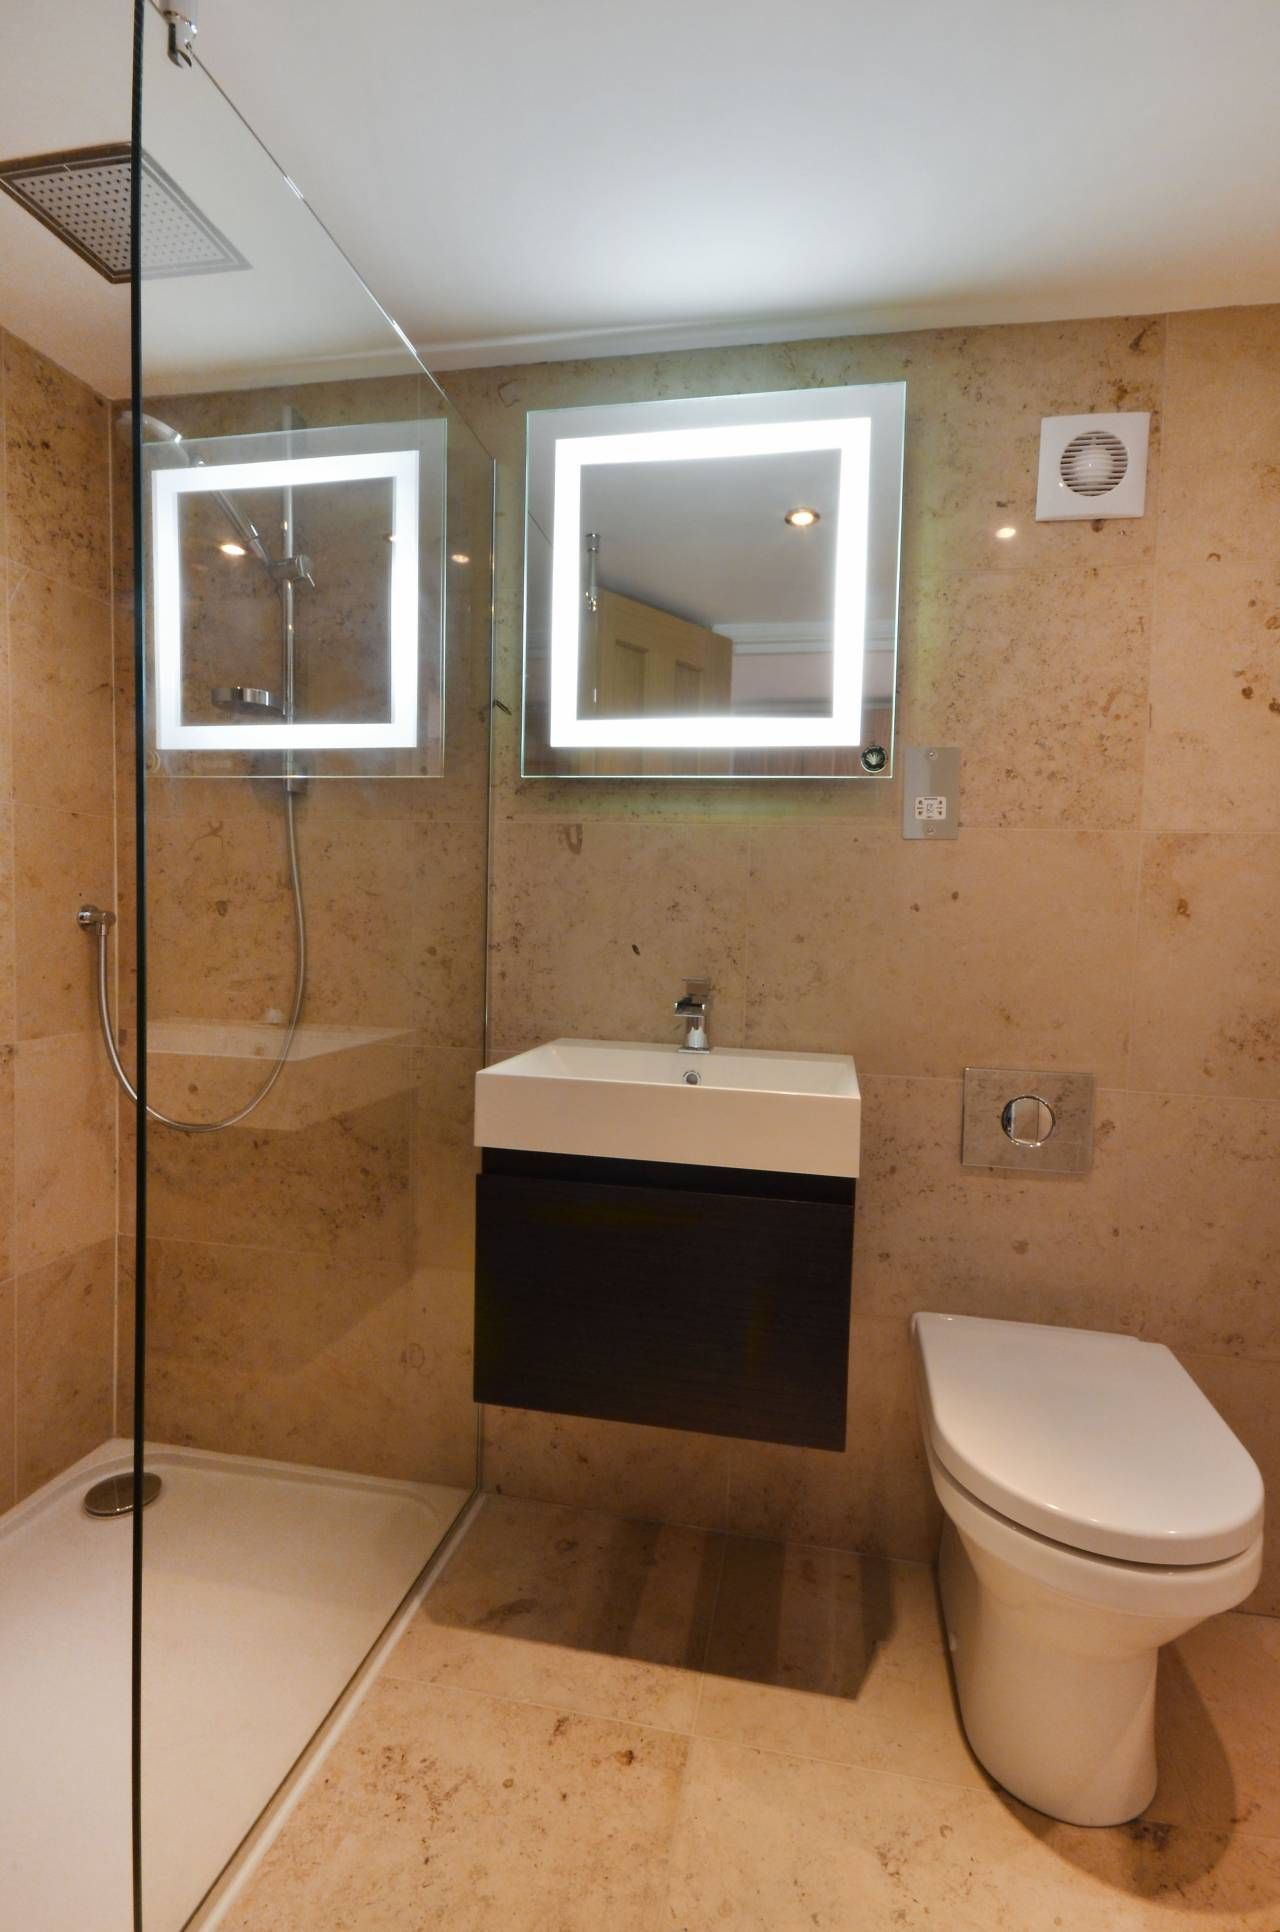 En suite bathrooms ideas - En Suite Shower Room A Walk In Shower Nicely Tiled Walls And An Amazing